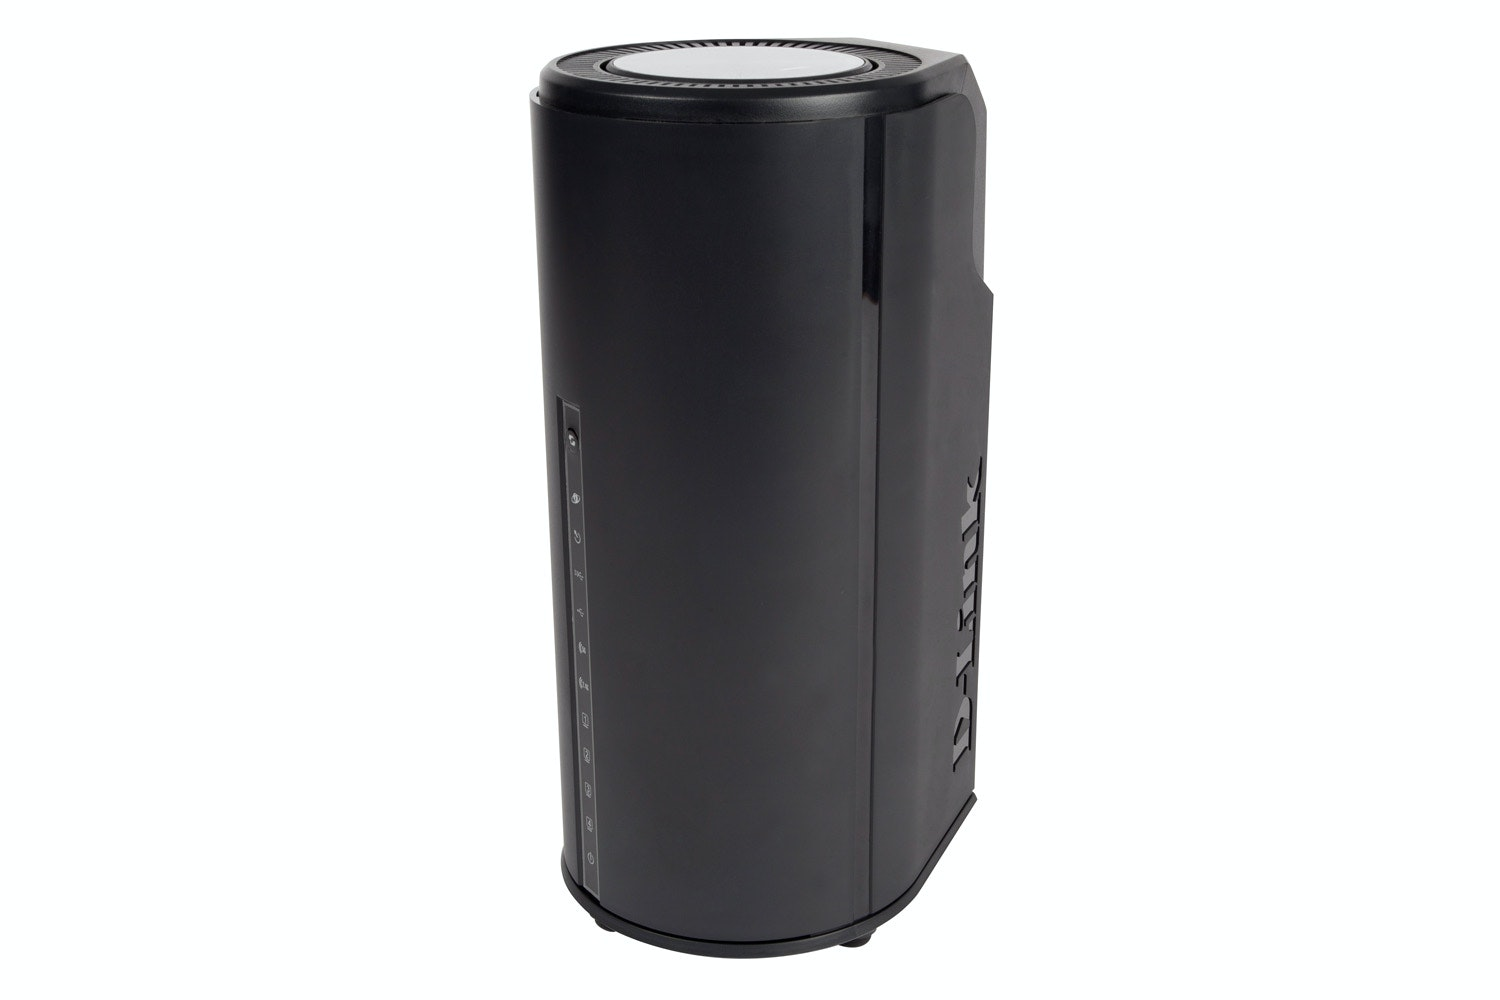 D-Link AC1900 DSL Wireless Router | DSL-3590L